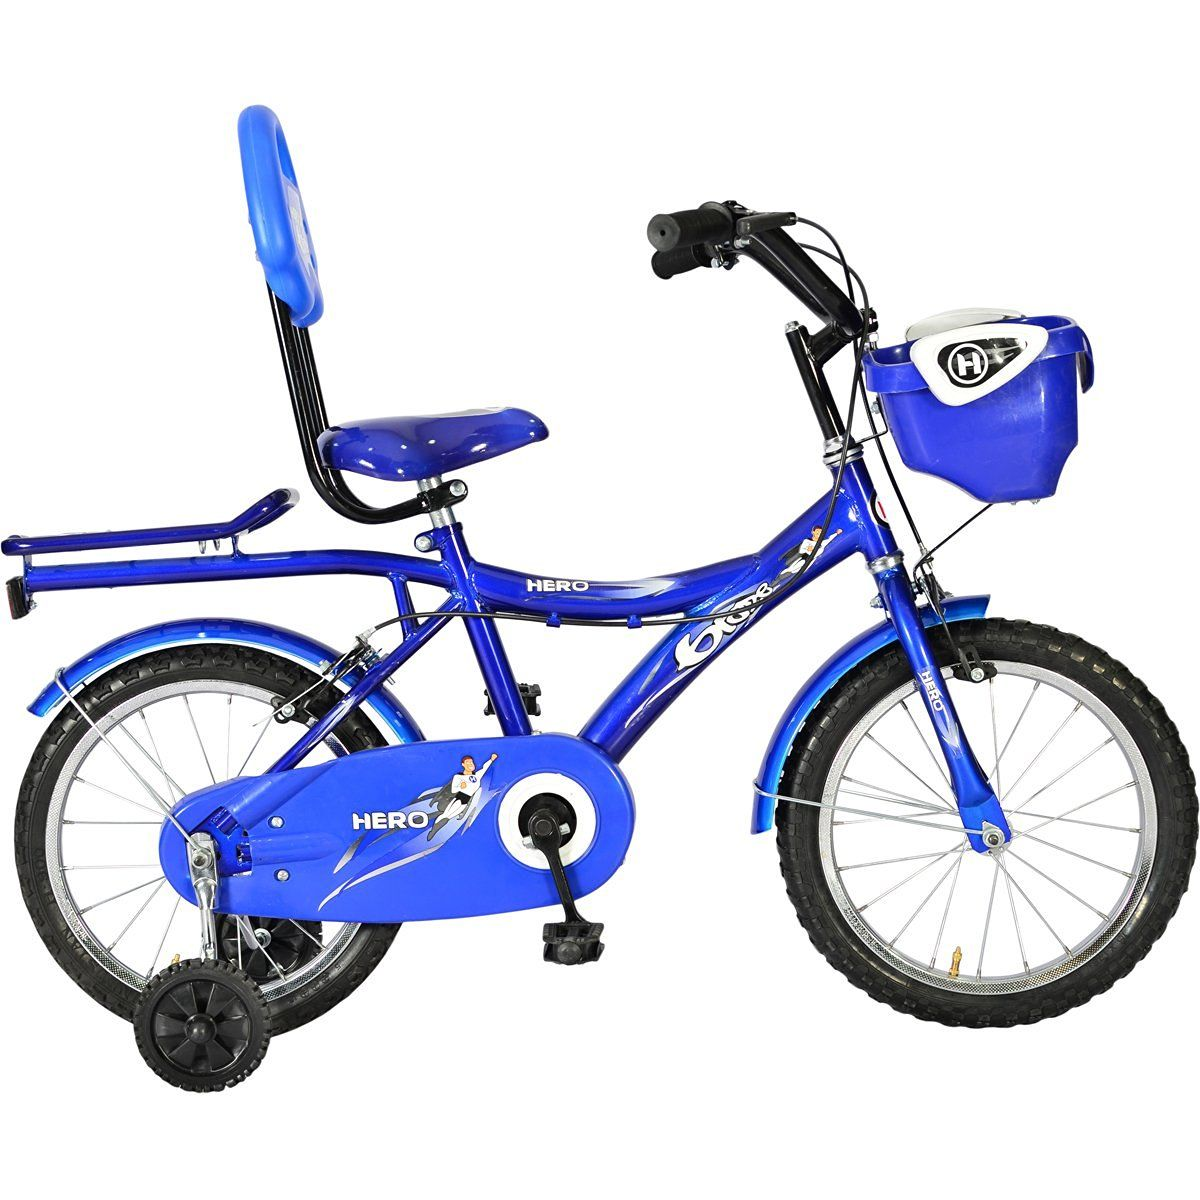 Best Baby Bicycle for 3 4 5 6 year old kids Hero Blaze Hi Riser Junior Cycle  (Blue/White)